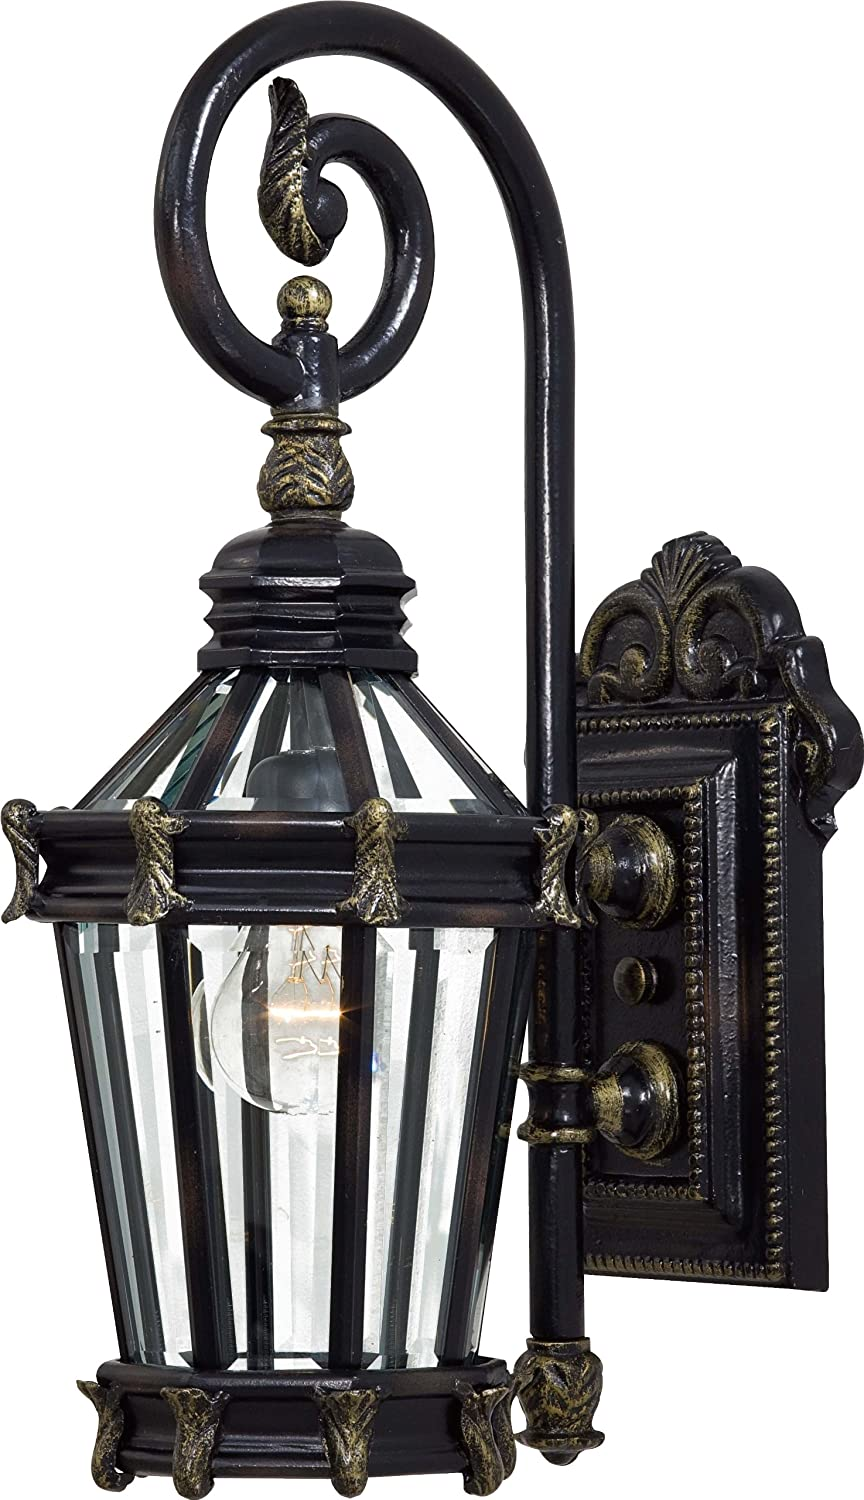 Stratford Hall Outdoor Wall Lantern In Heritage With Gold Highlights   Wall  Porch Lights   Amazon.com